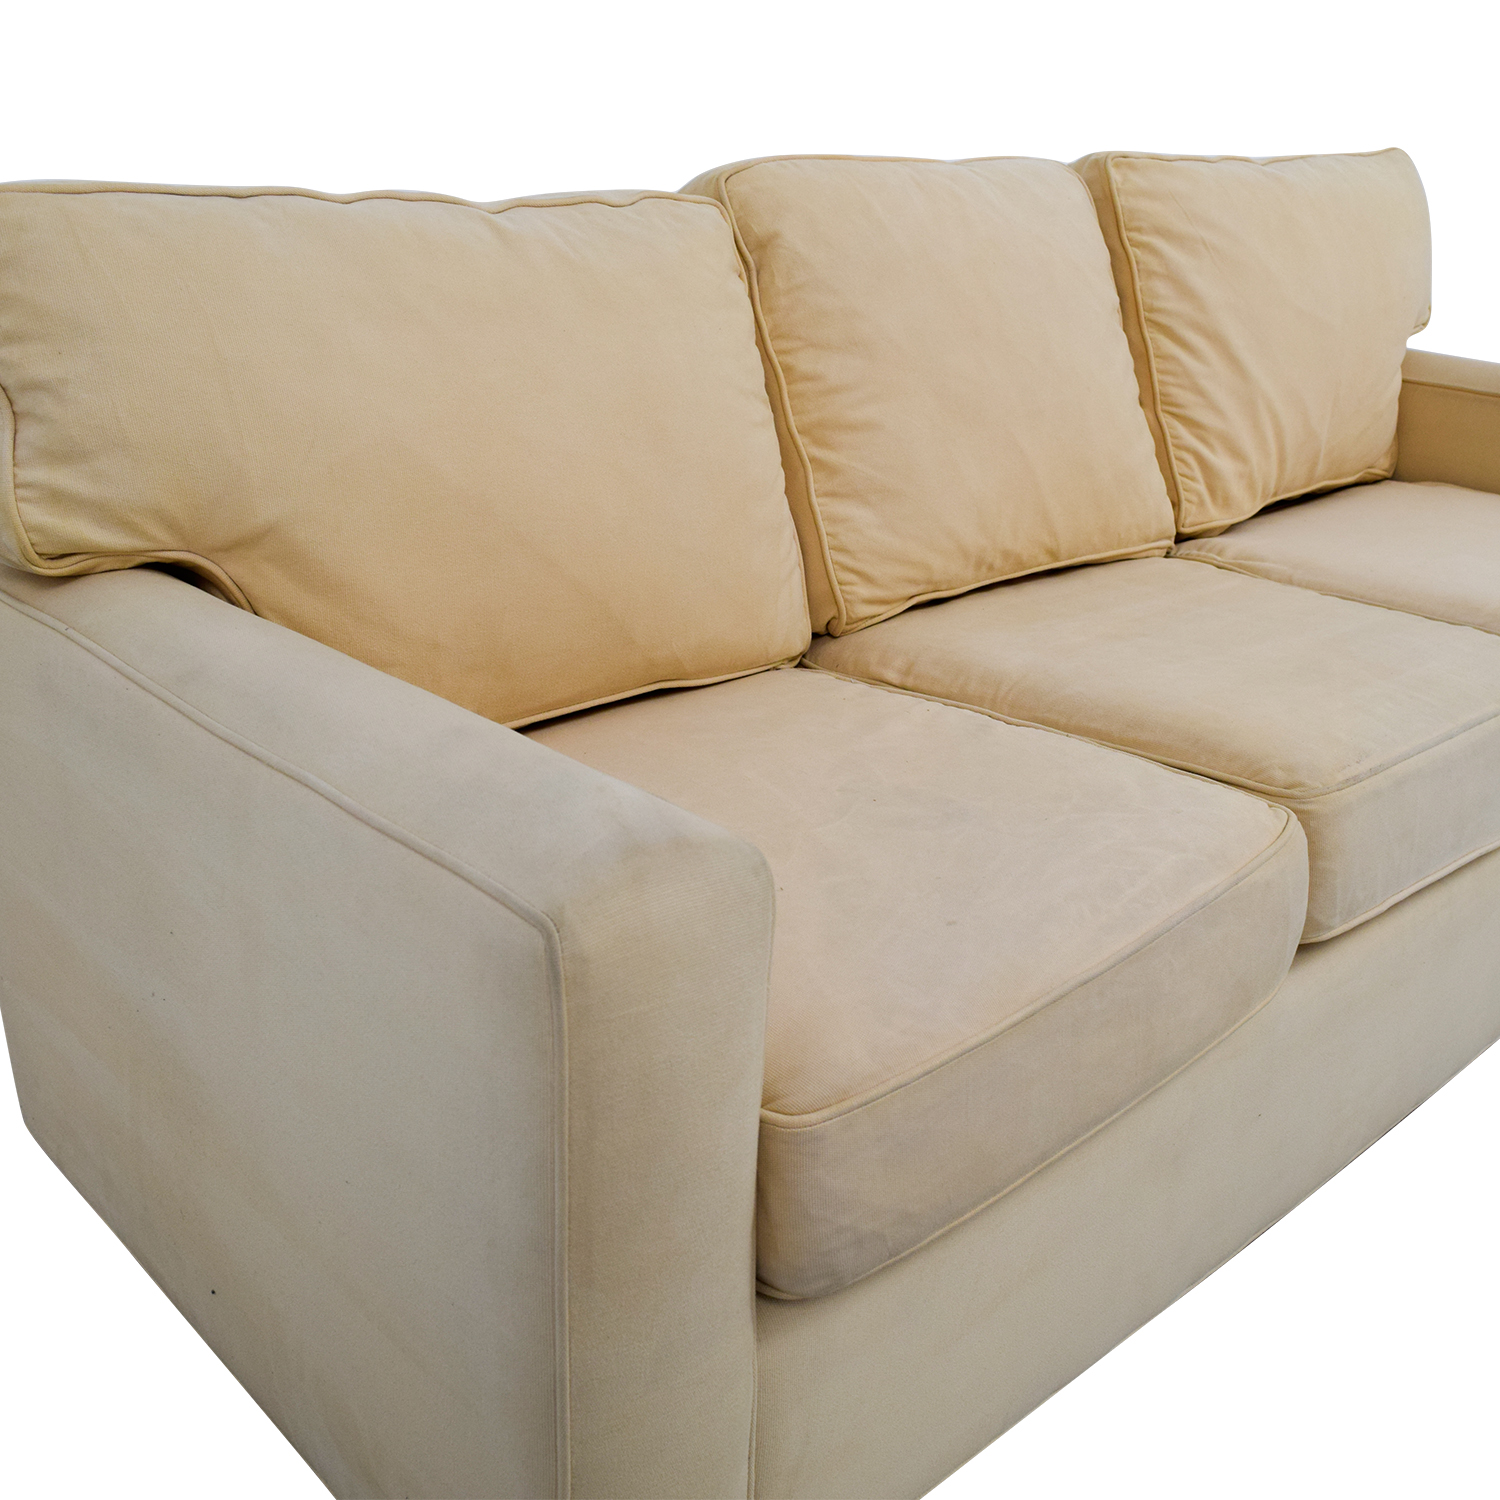 buy Pottery Barn Tan Three-Cushion Sofa Pottery Barn